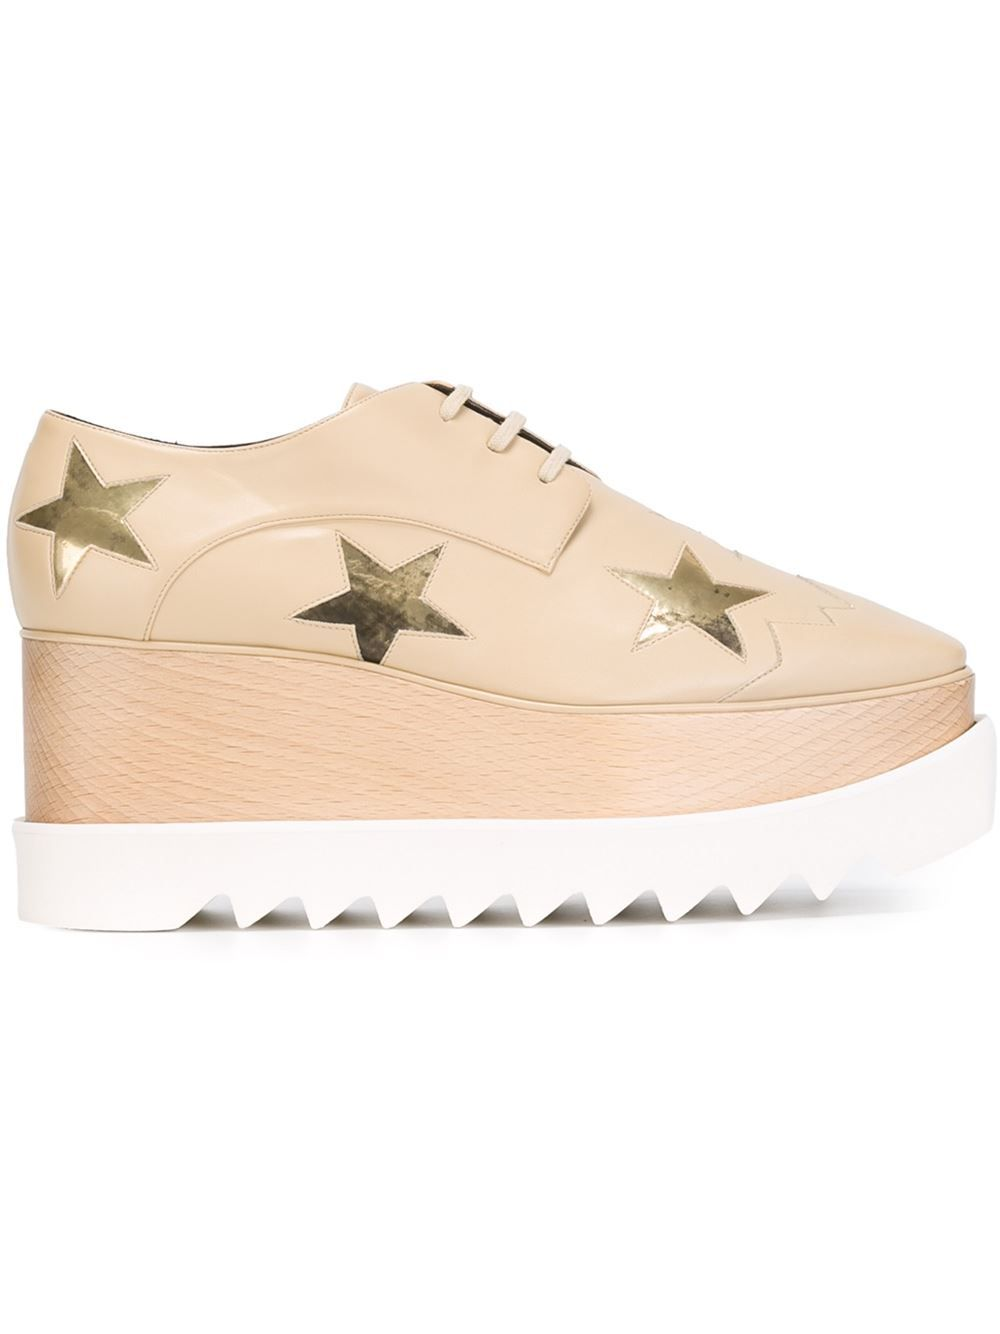 f16d0d42f8e Stella Mccartney  elyse Star  Loafers - Stefania Mode - Farfetch.com ...